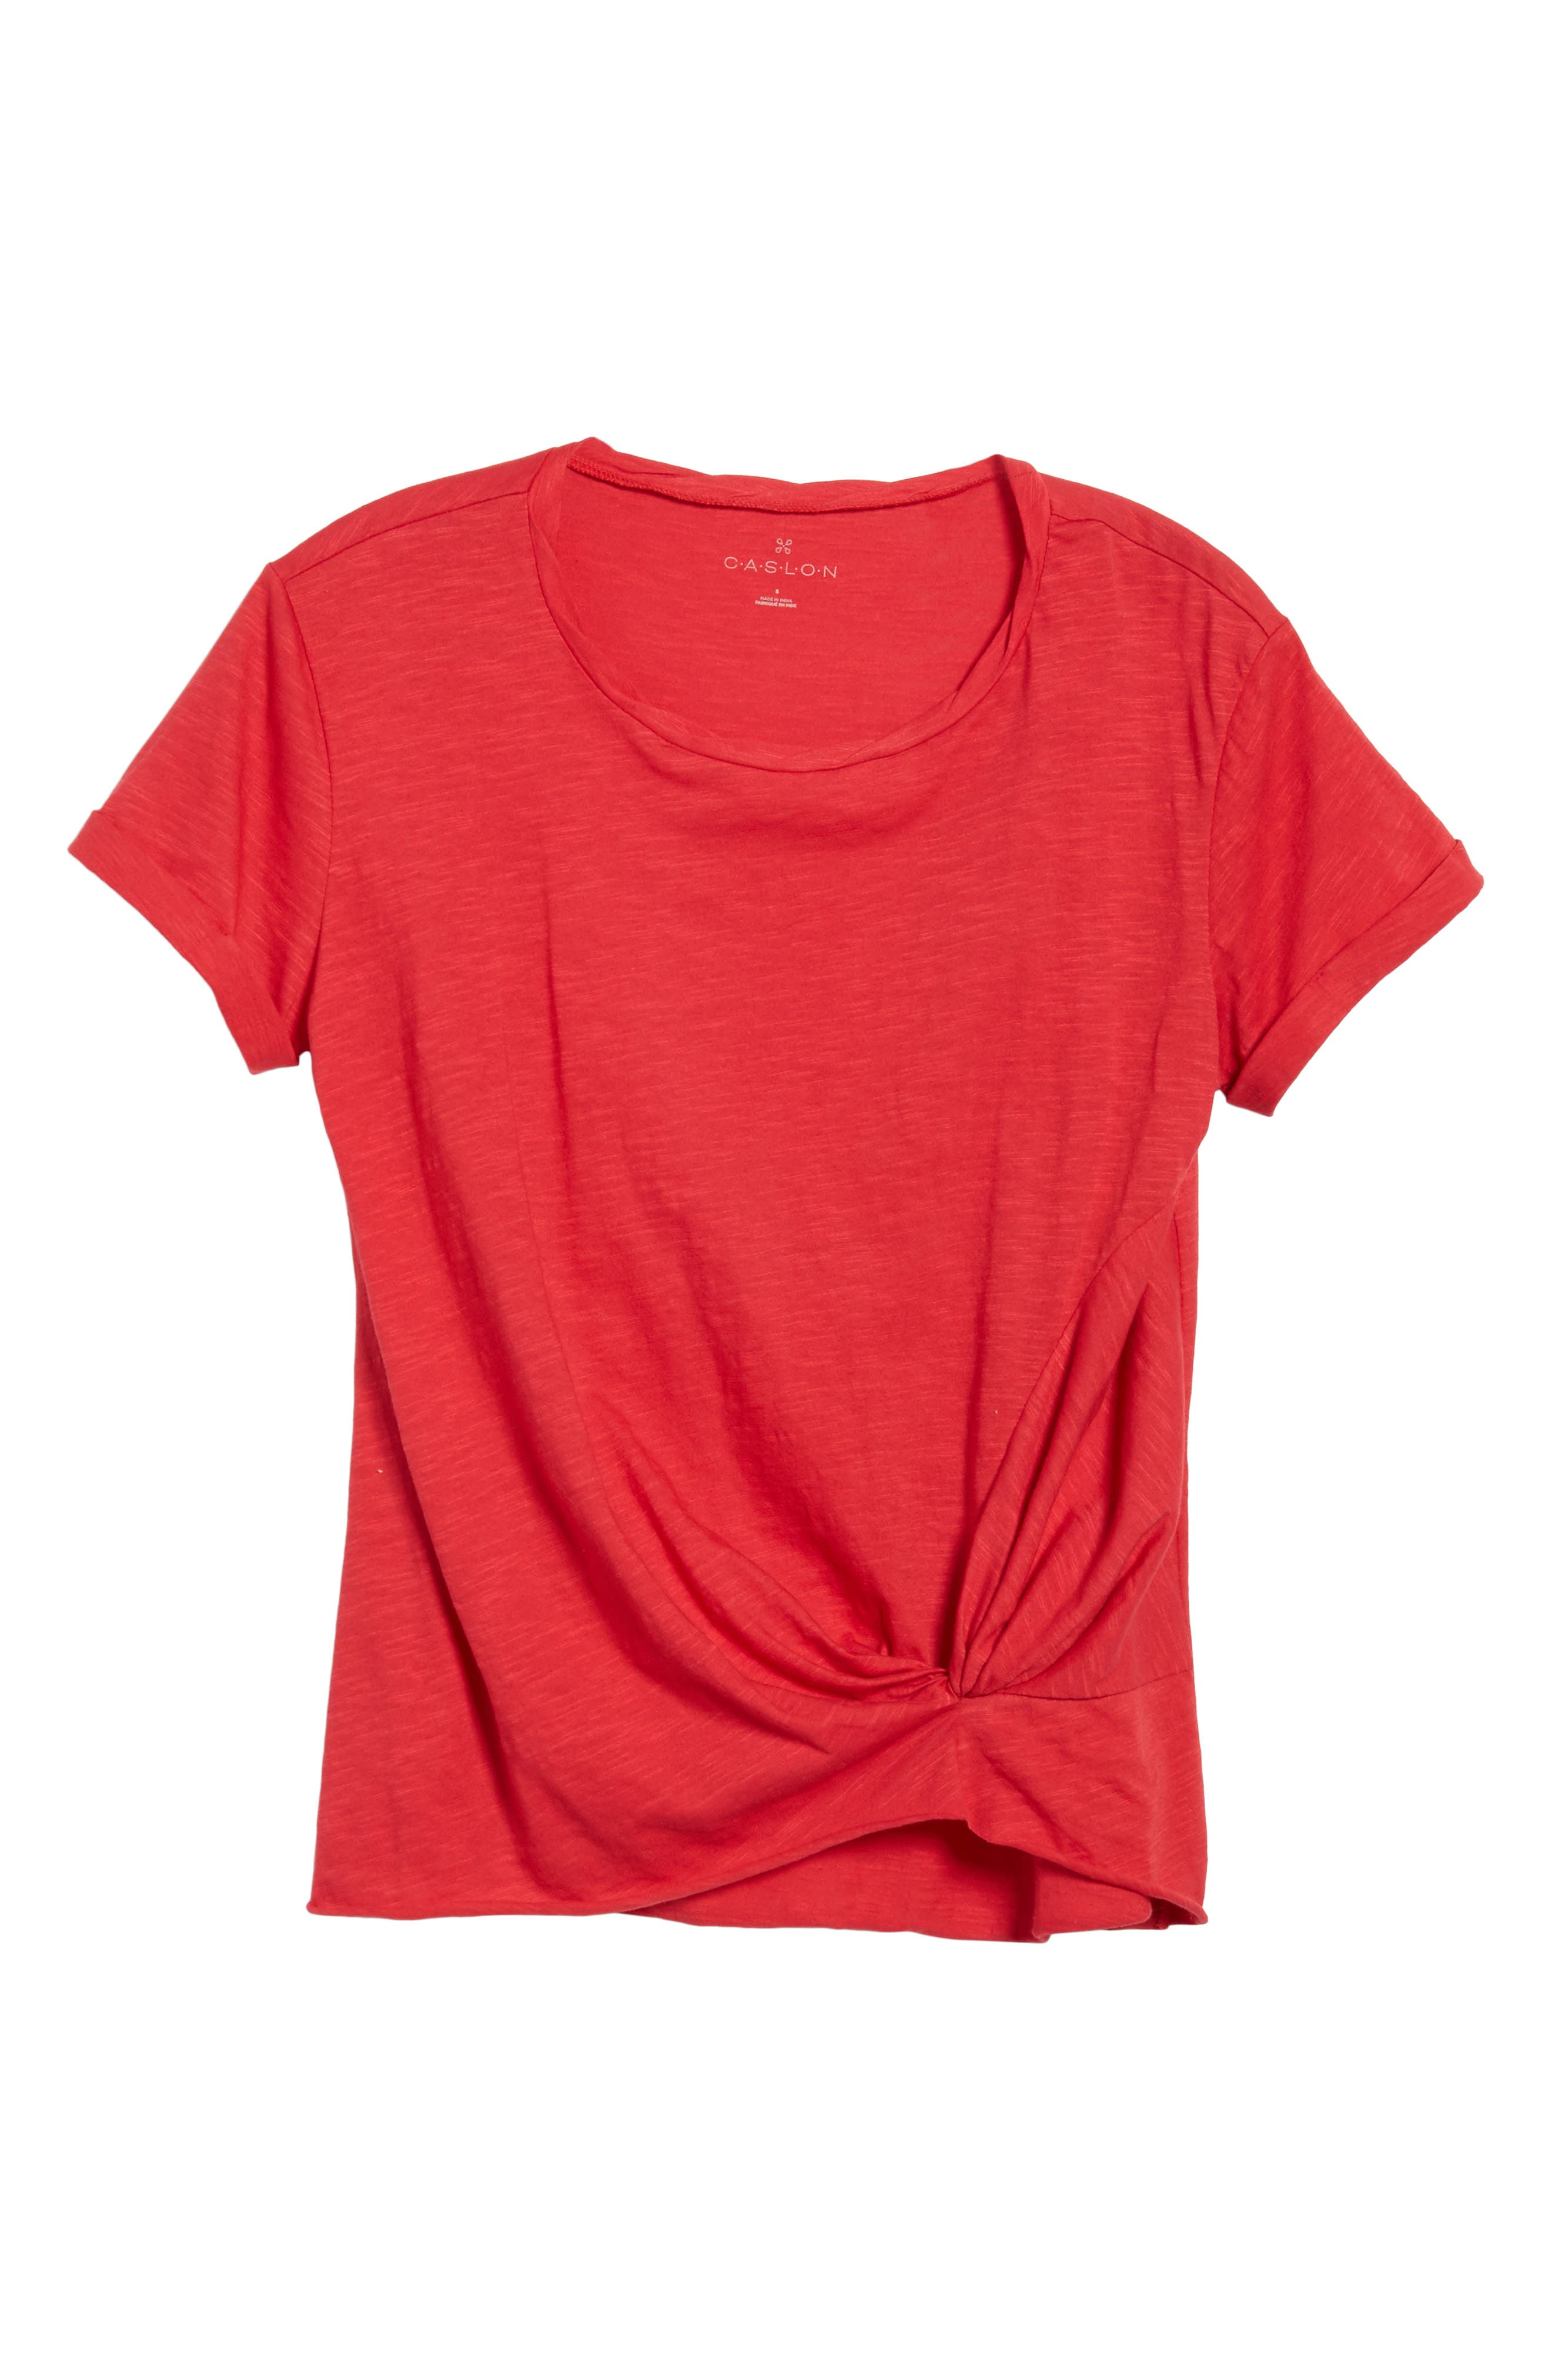 Knotted Tee,                             Alternate thumbnail 6, color,                             Red Jalapeno